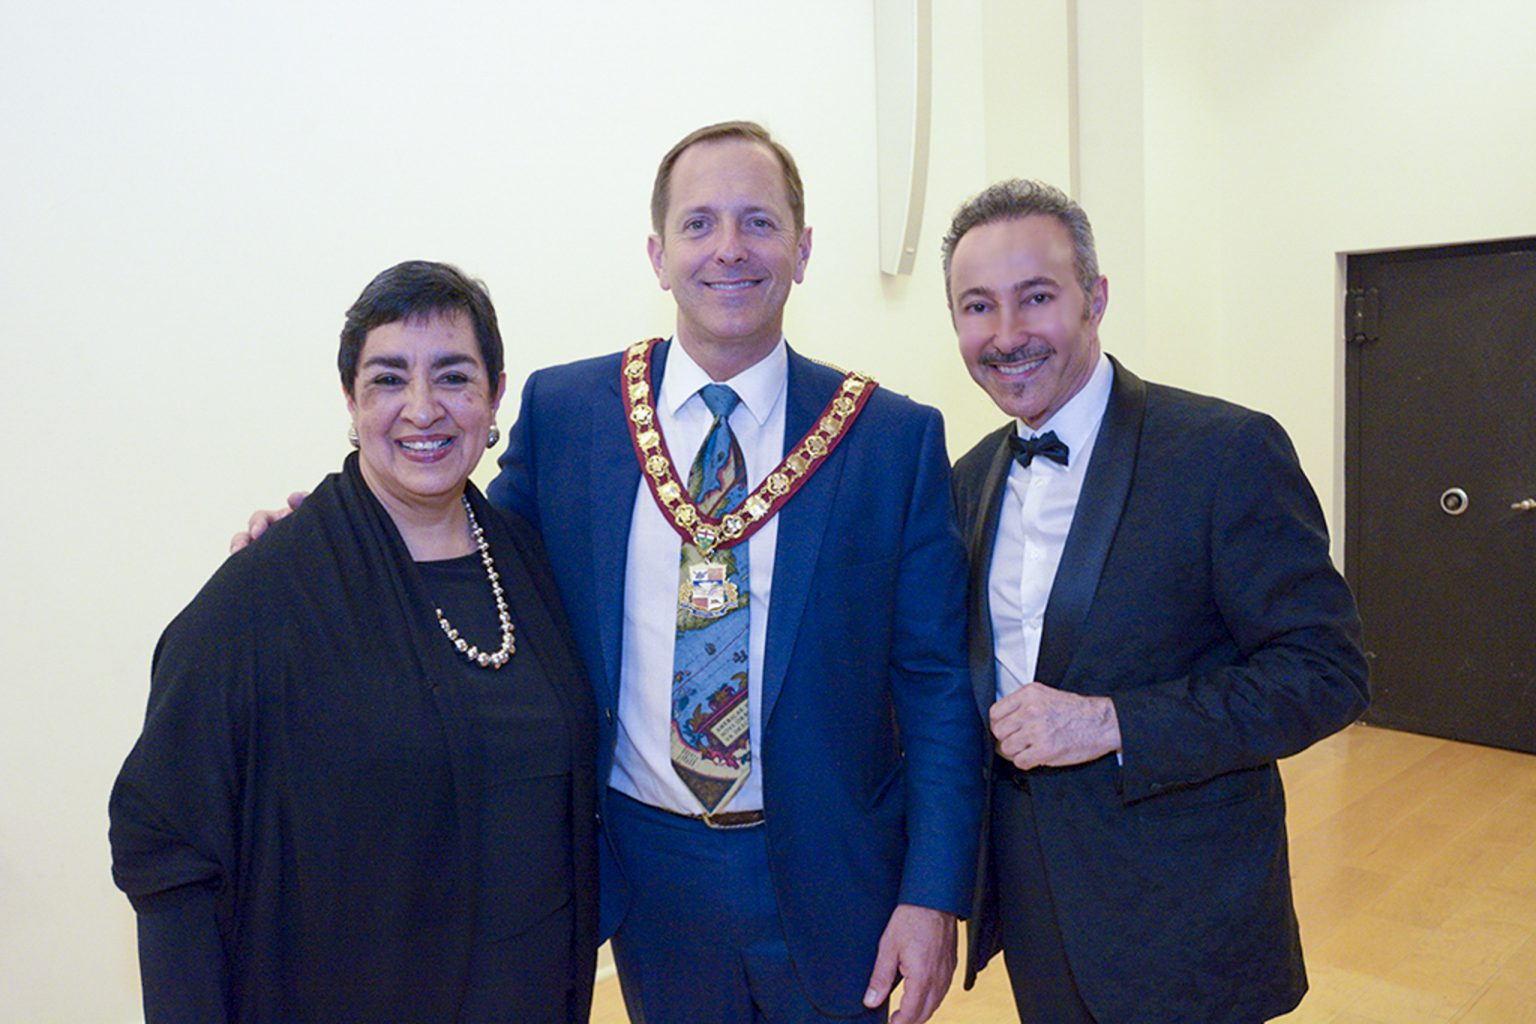 The Patron of the Water for Life, International Art Exhibition, First Edition, the Mayor of Niagara Falls, Jim Diodati, wih Angelina Herrera and Antoine Gaber during the opening.